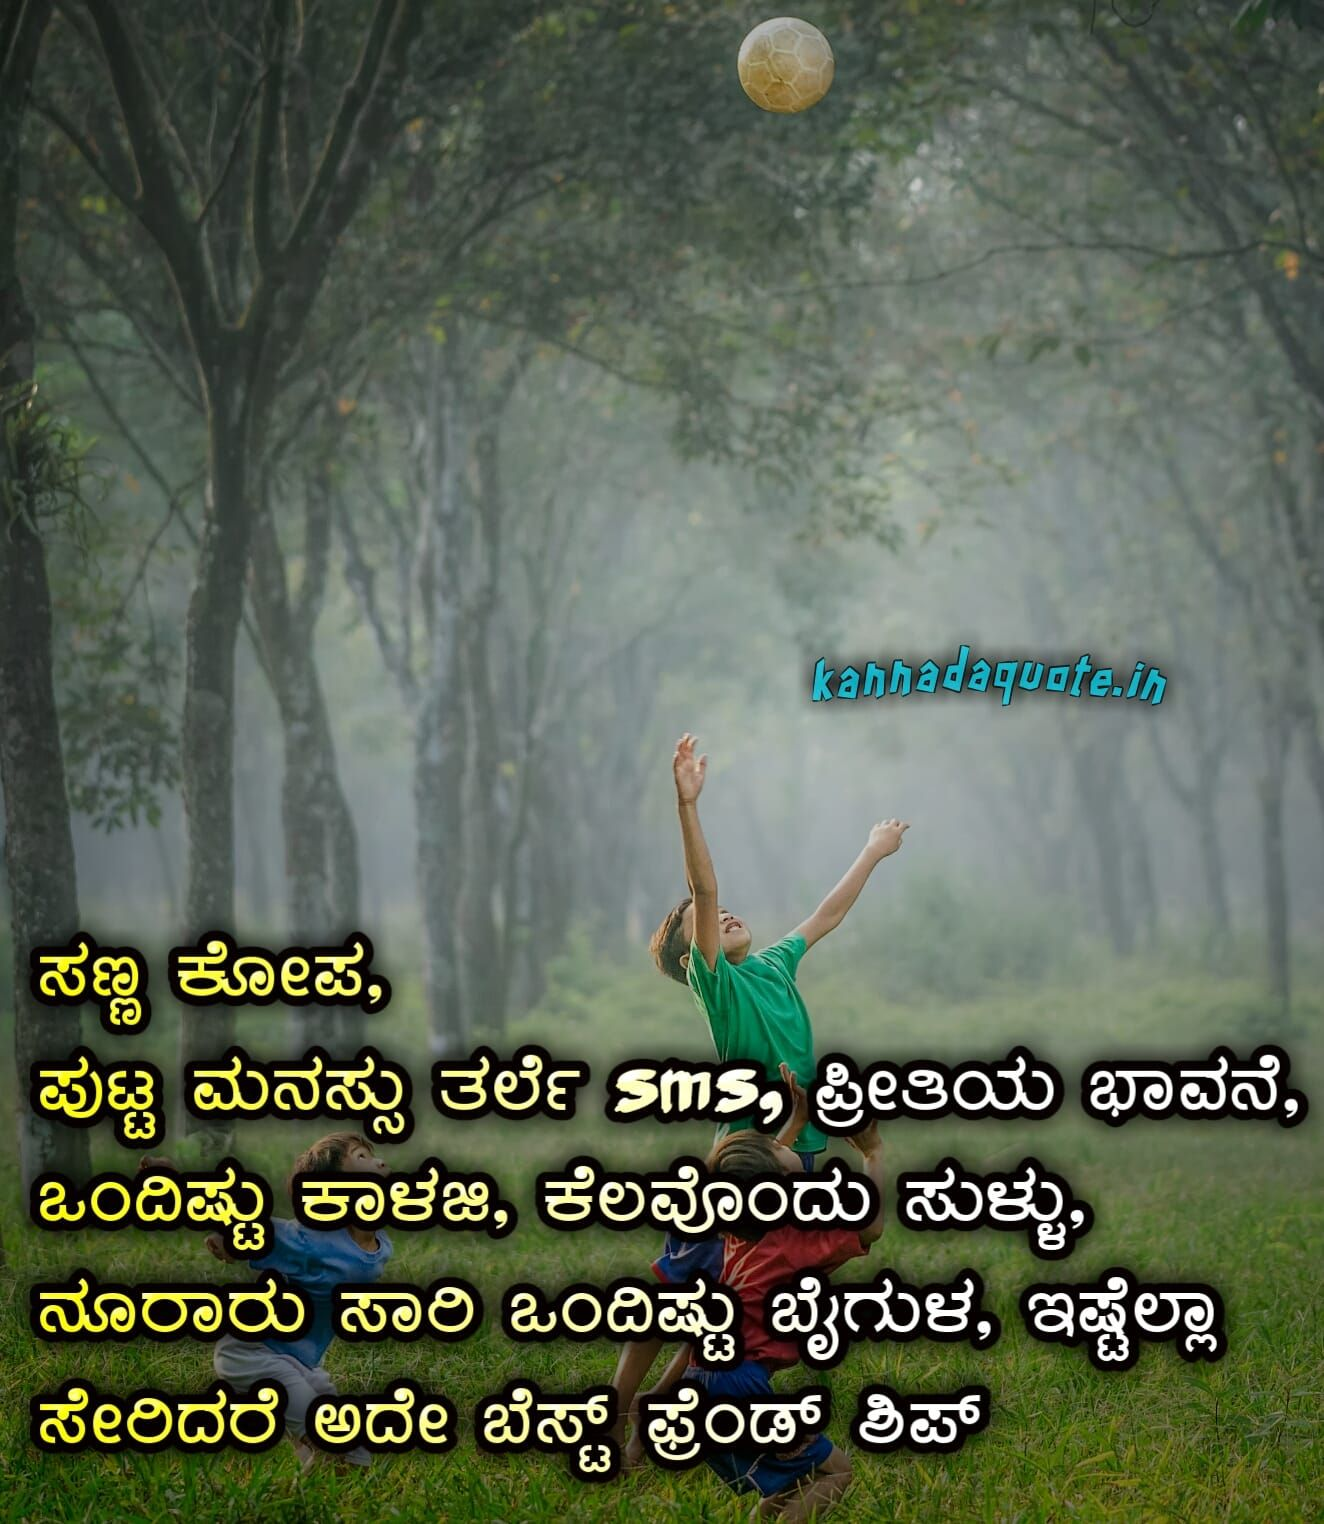 Friendship Quotes In Kannada With Images Friendship Quotes Meaningful Friendship Quotes Short Friendship Quotes